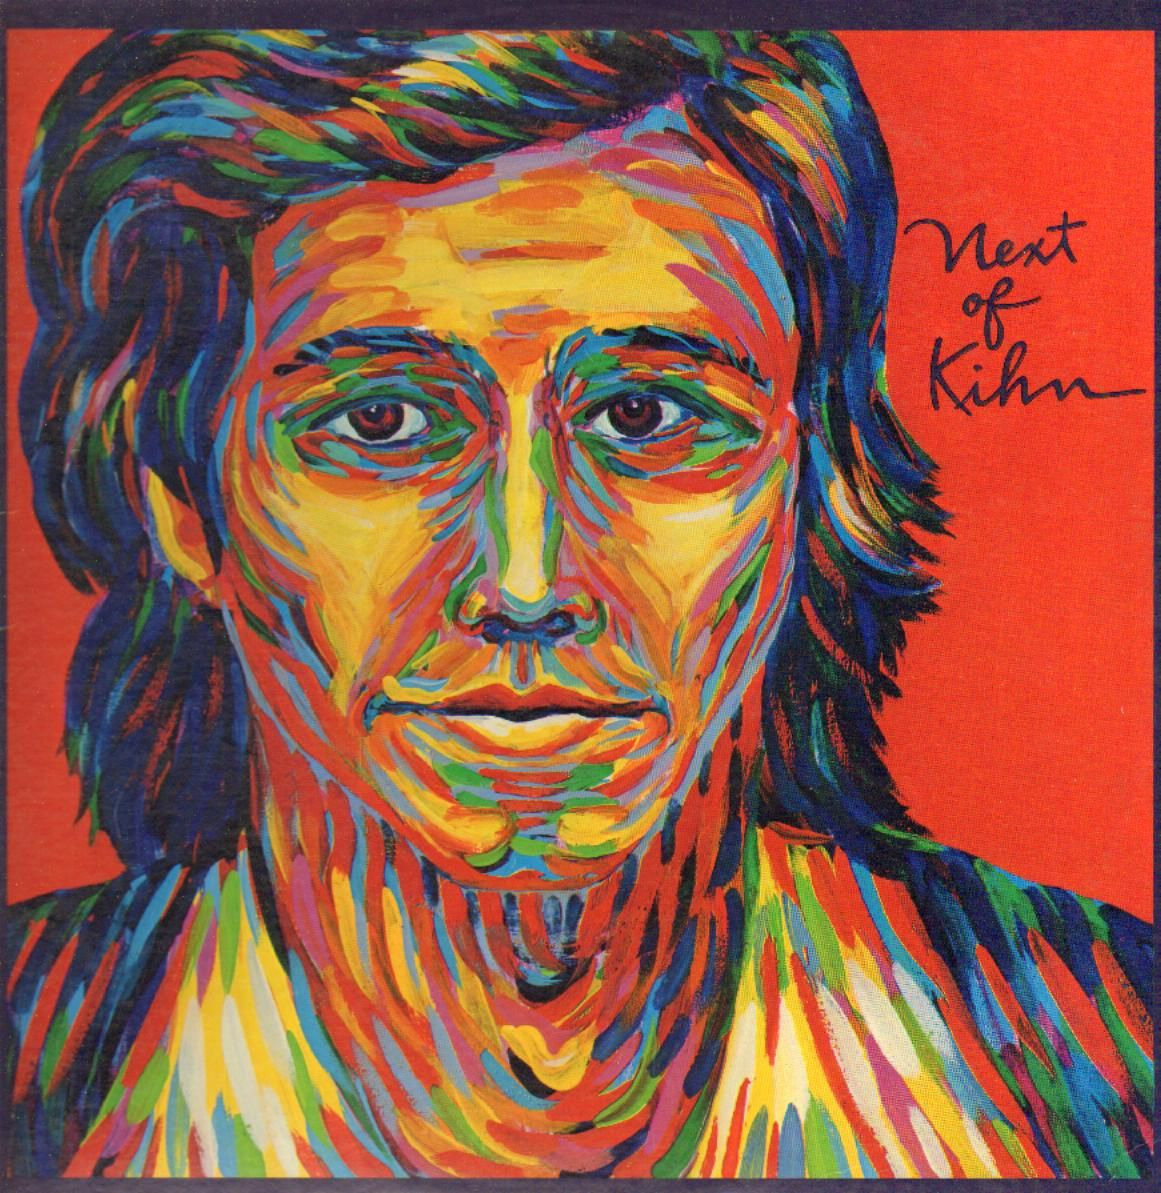 Buy Greg Kihn Next Of Kihn on iTunes